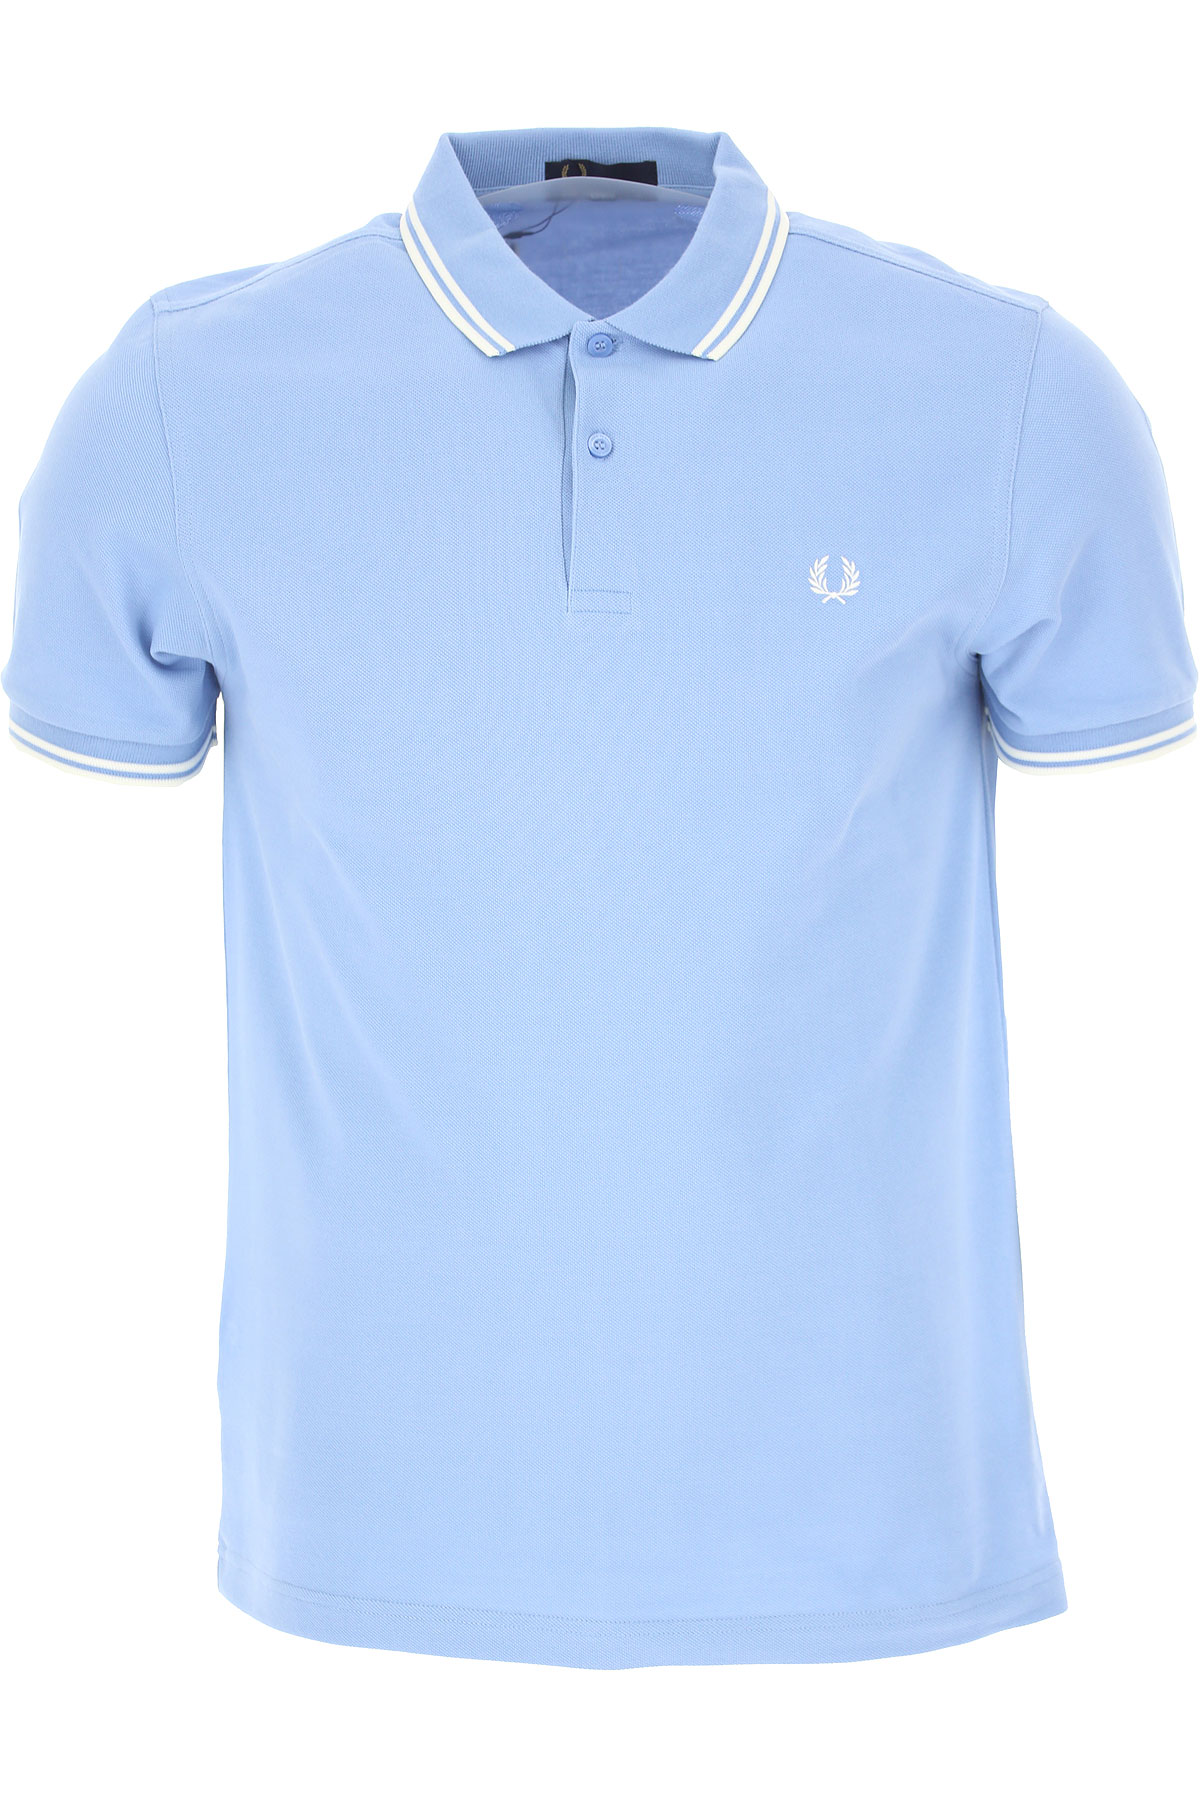 Fred Perry Polo Shirt for Men On Sale, Bright Light Sky Blue, Cotton, 2019, L S